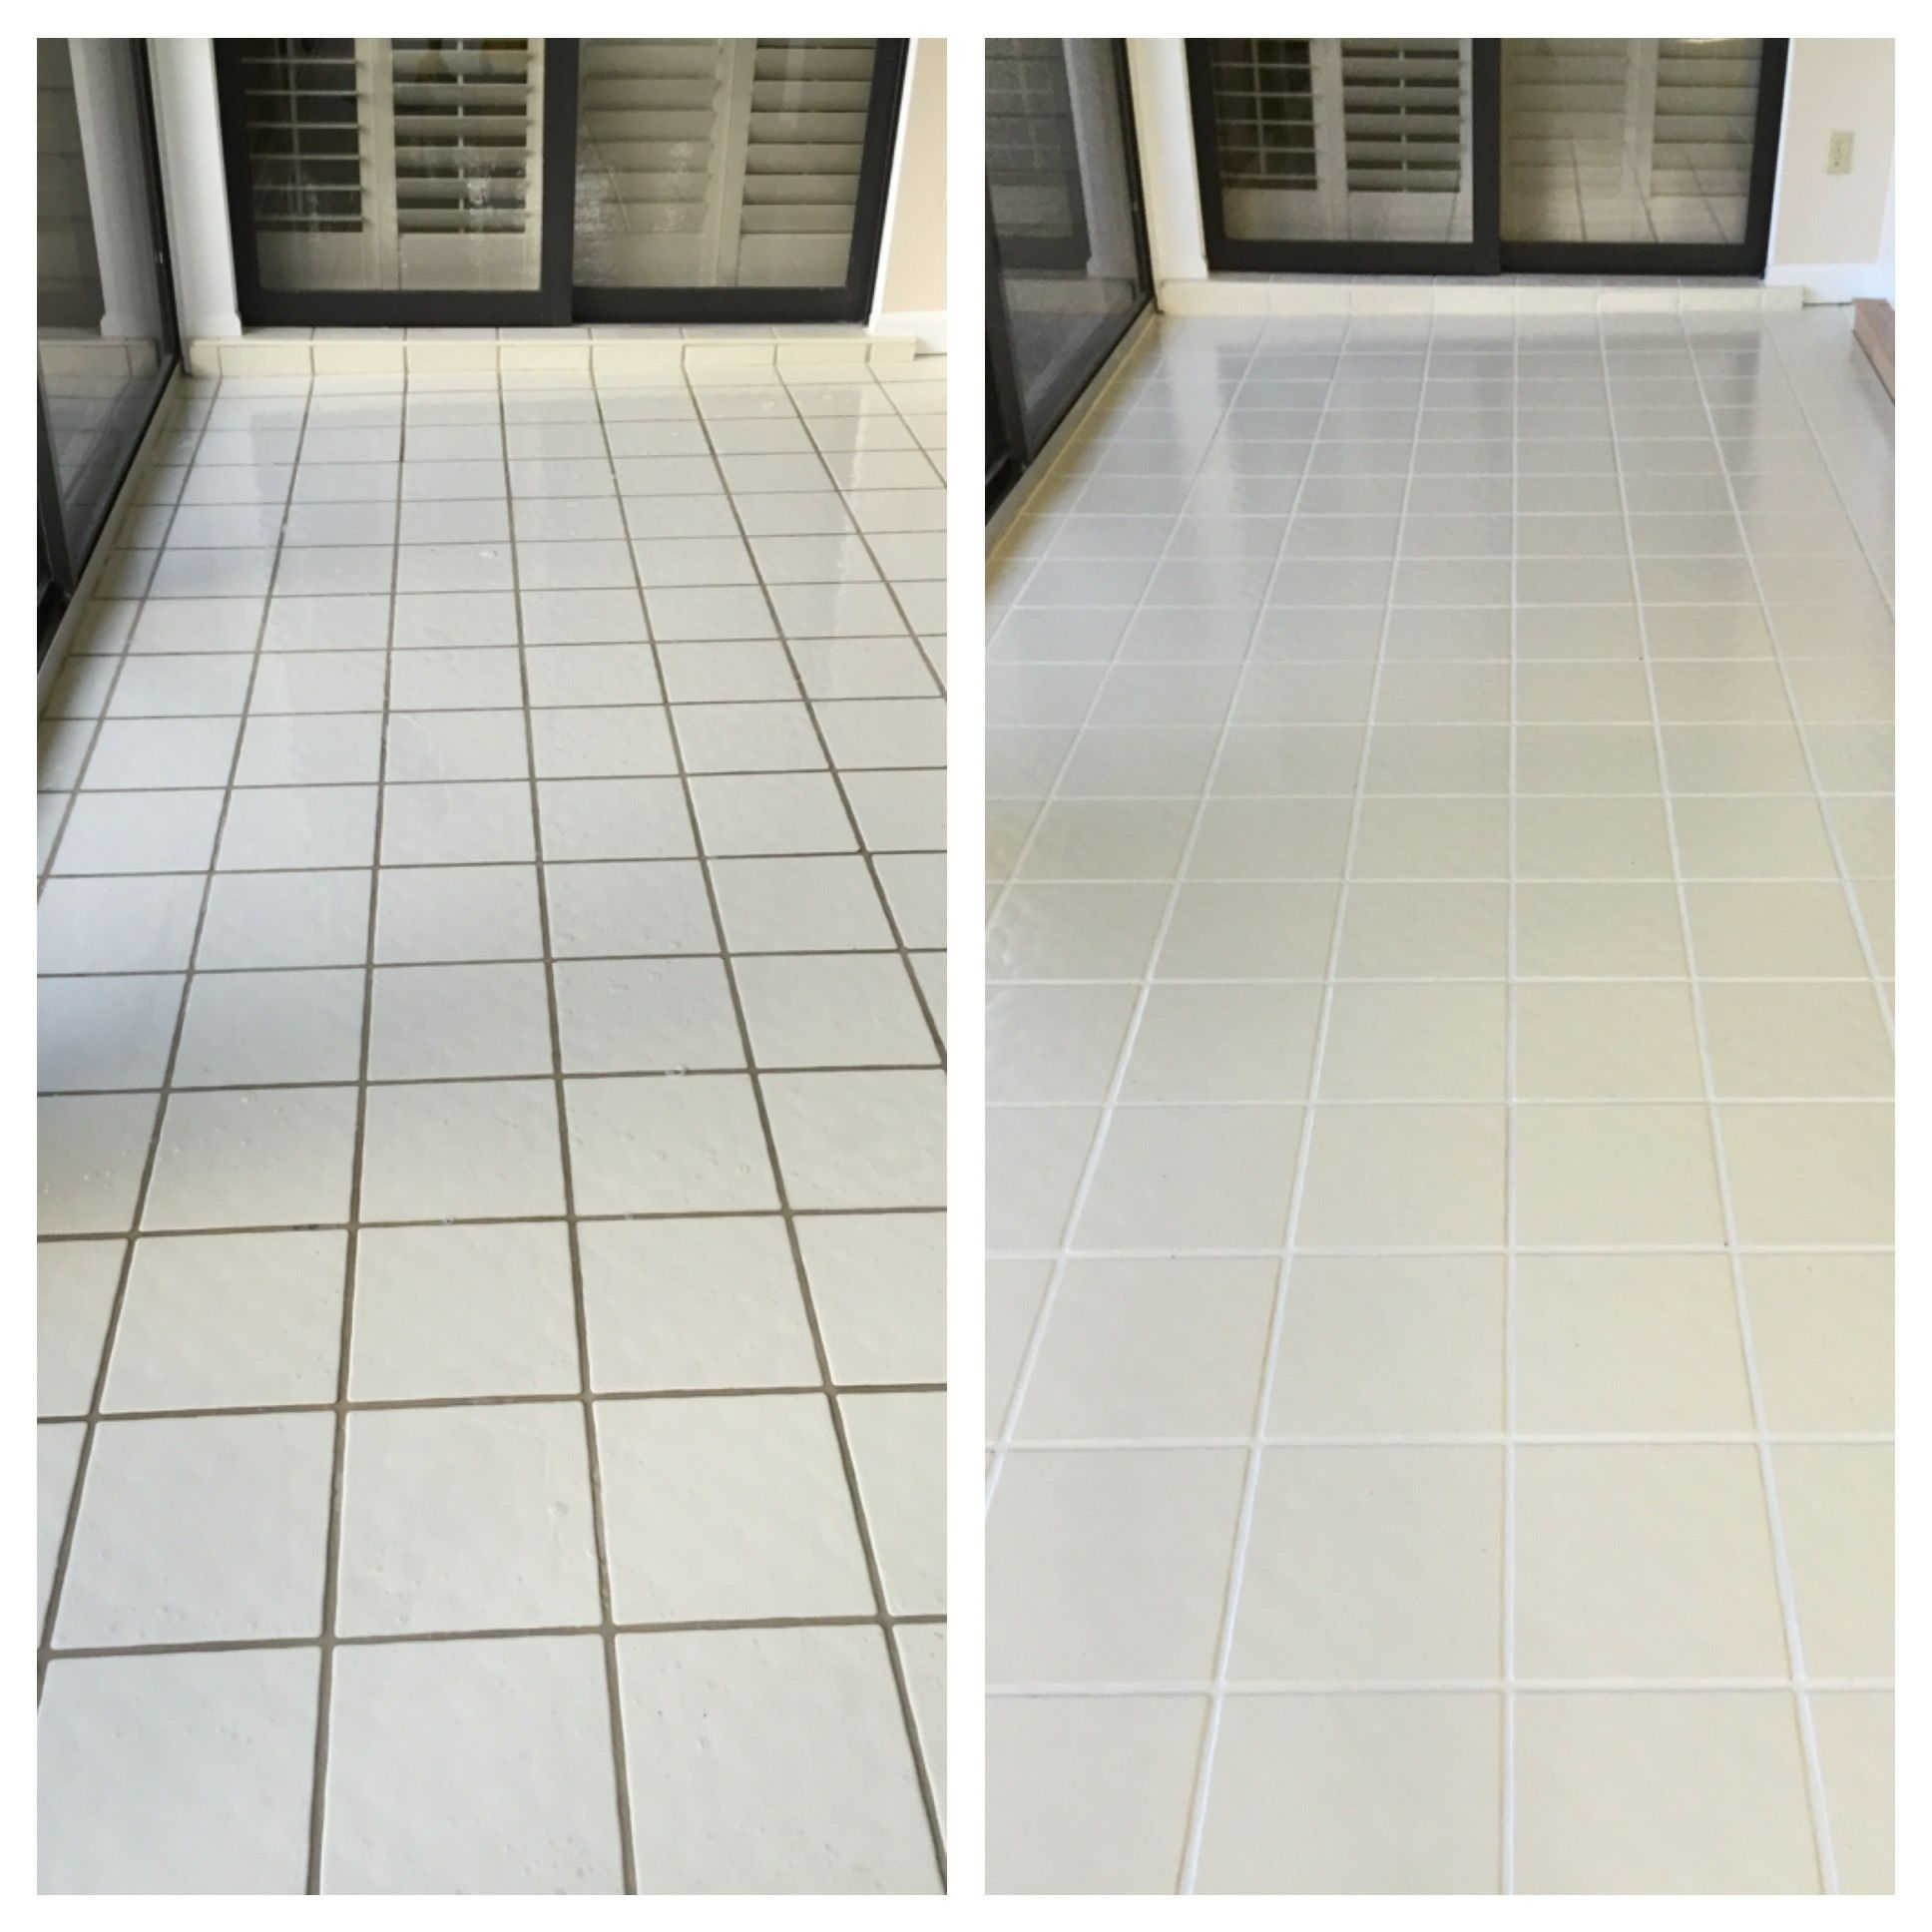 Before And After Grout Plus Clean And Color Seal Clean Tile Tile Grout Ceramic Shower Tile